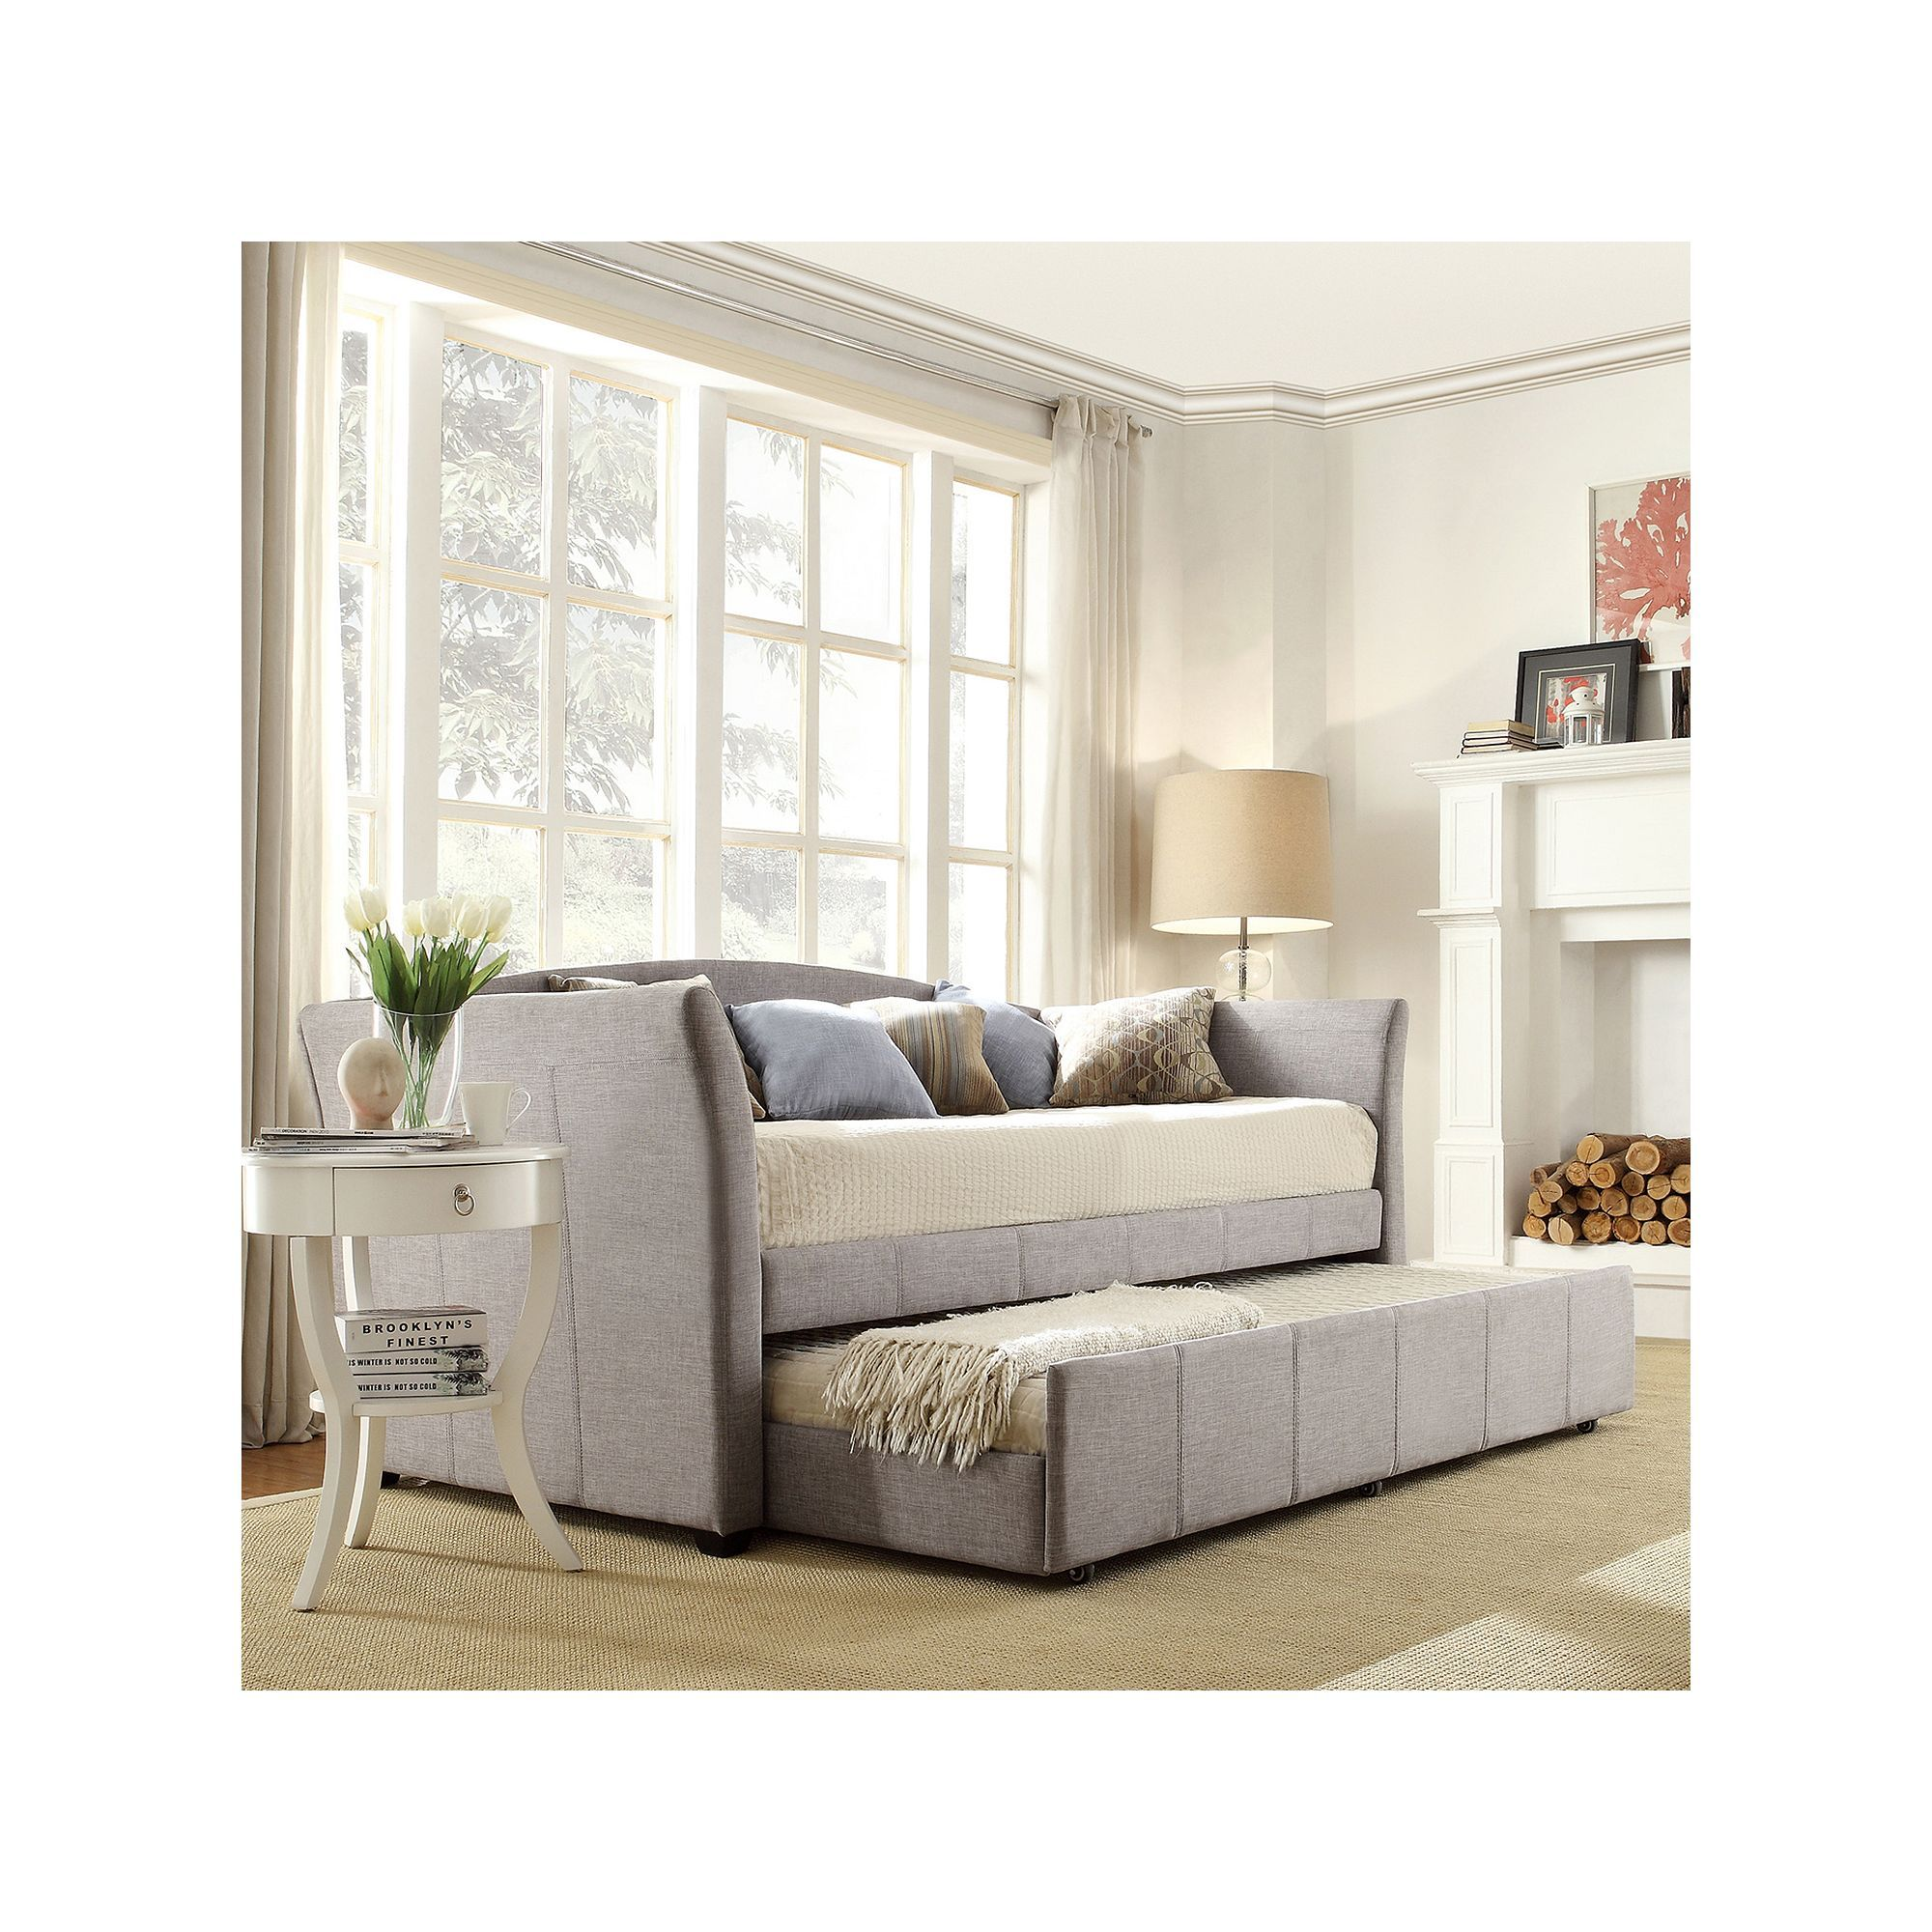 Astounding Homevance Myra Twin Daybed Products Upholstered Daybed Ncnpc Chair Design For Home Ncnpcorg